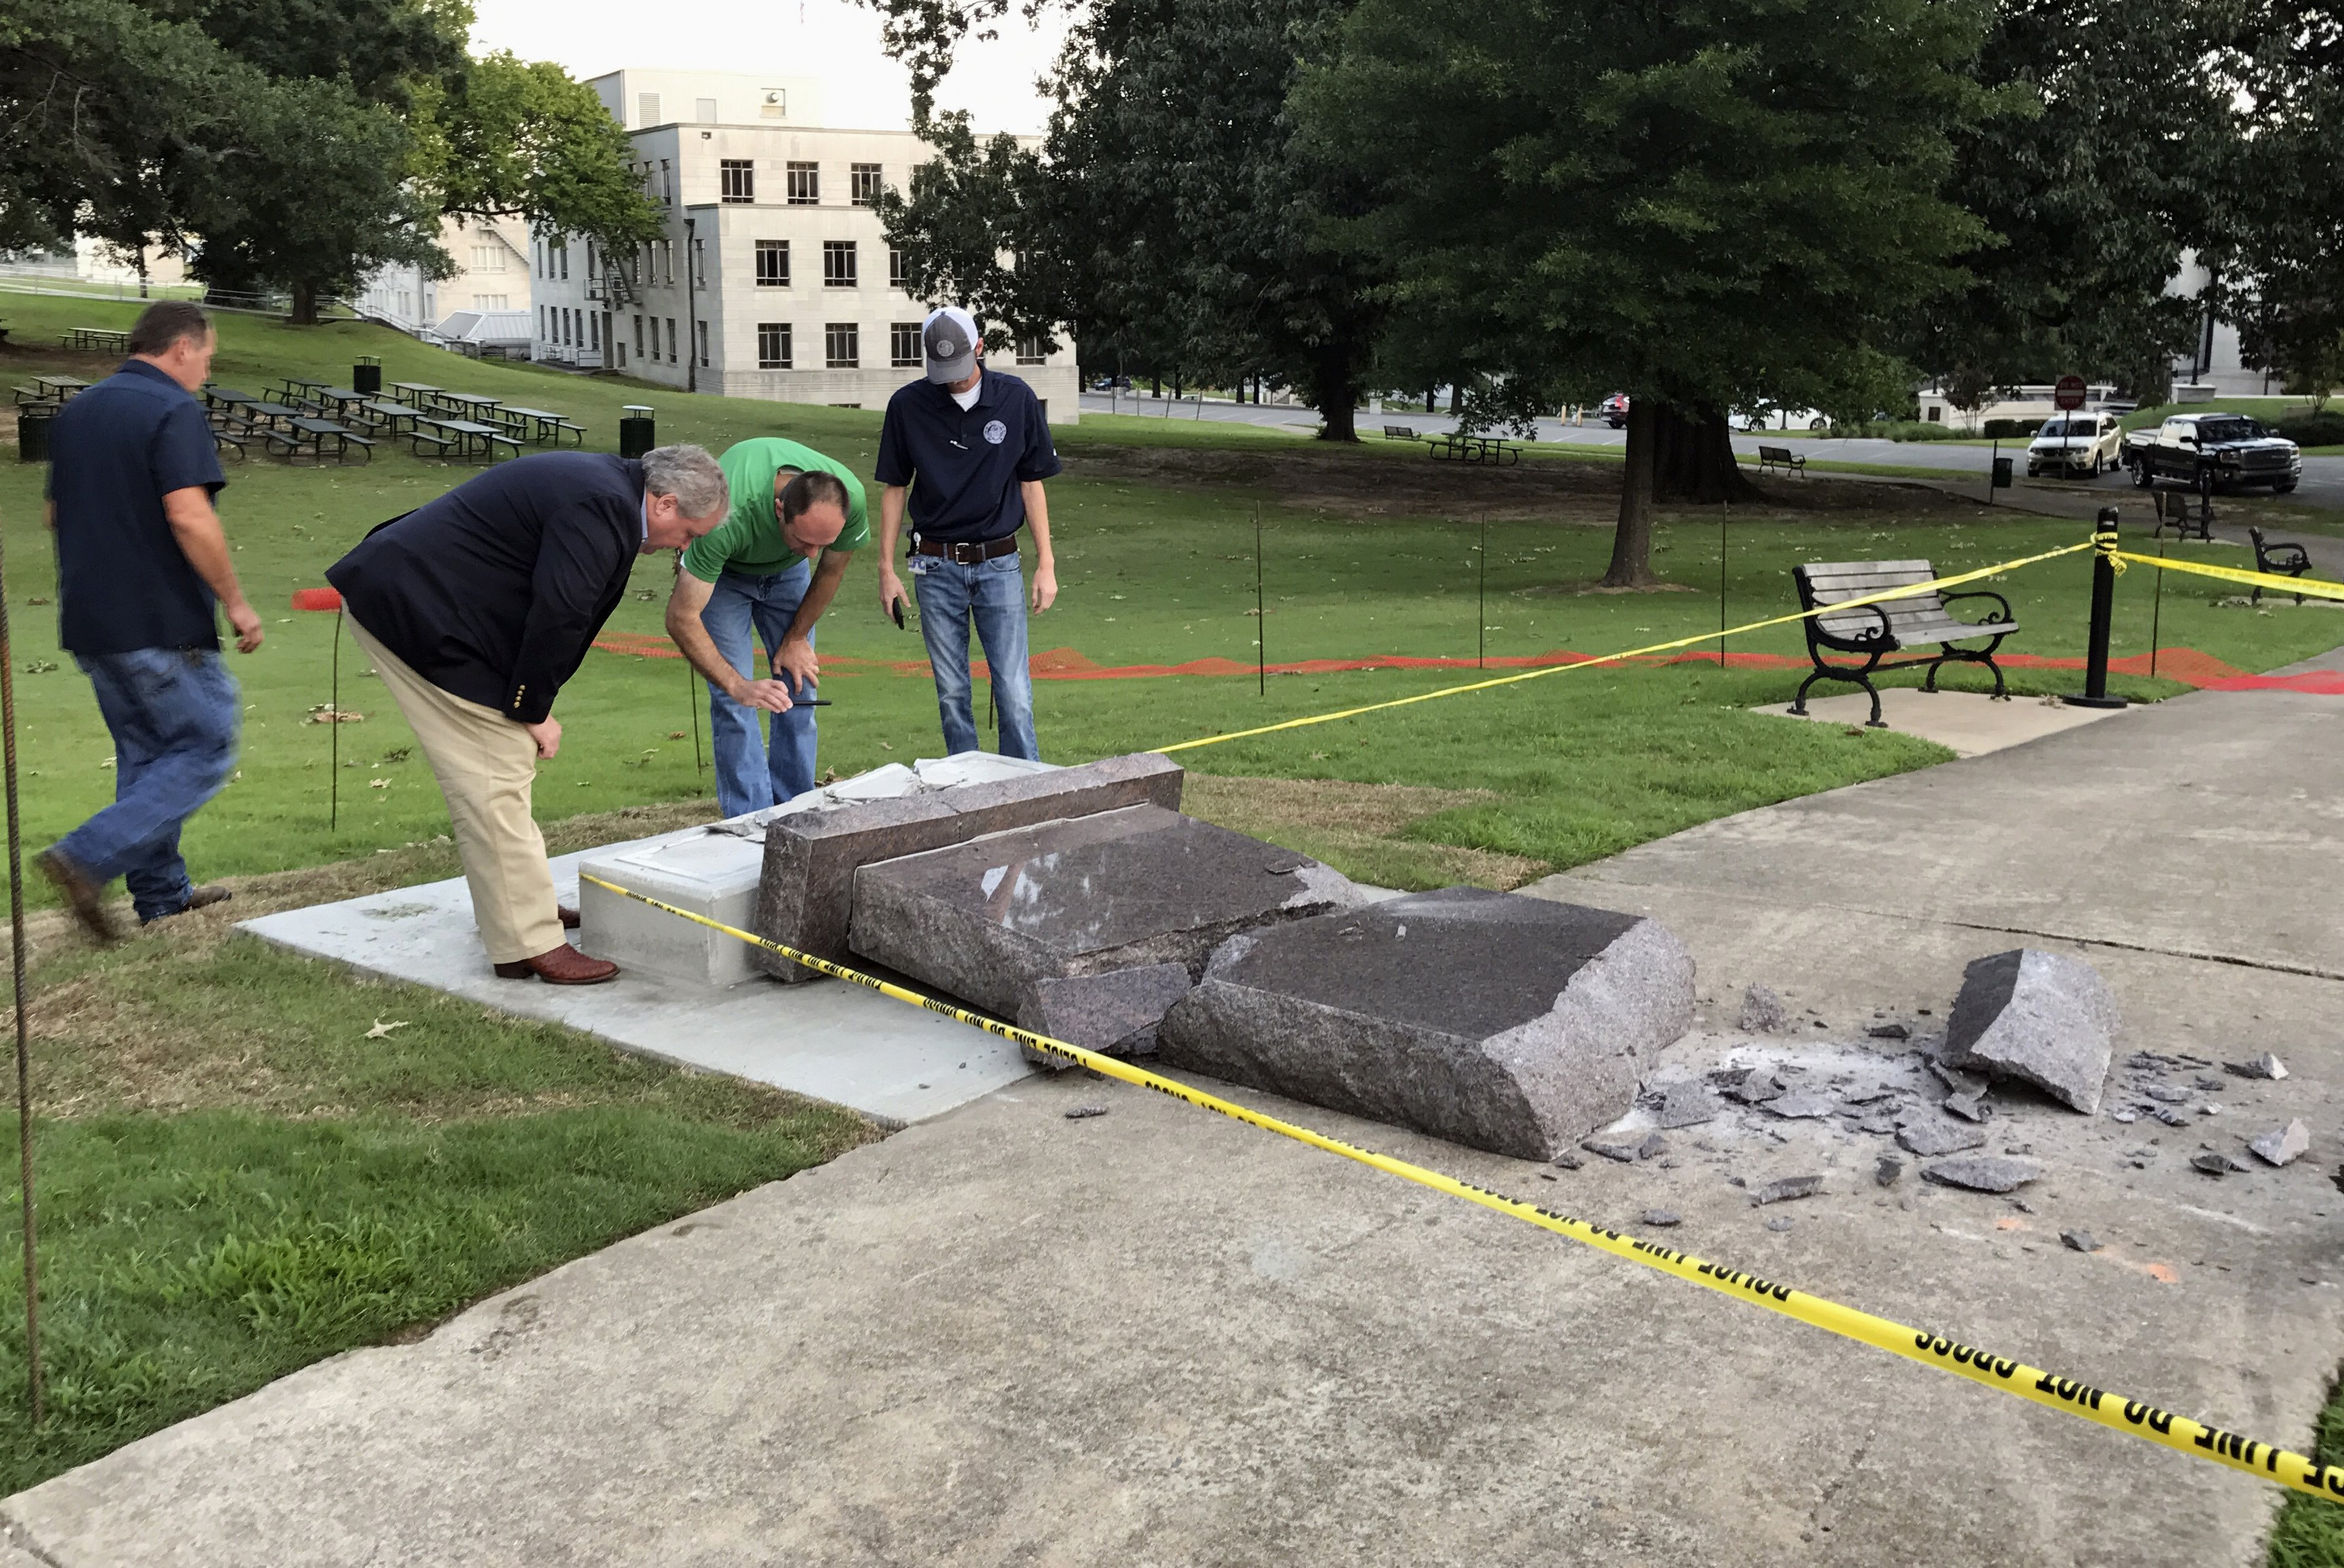 Personnel from the Secretary of State's office inspect the damage to the new Ten Commandments monument outside the state Capitol in Little Rock, Ark., on June 28, 201.